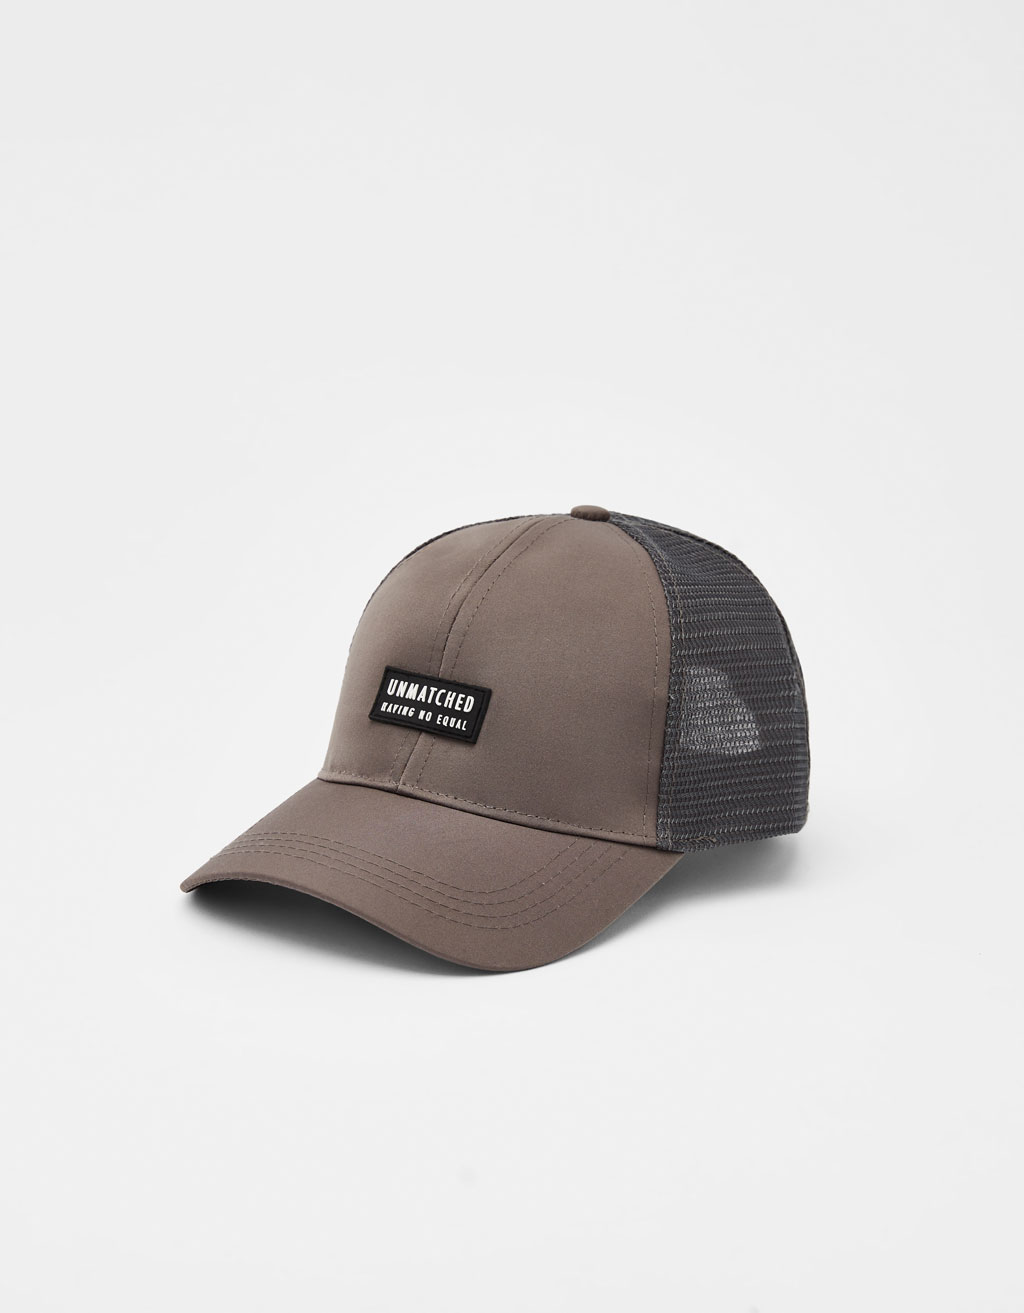 Mesh cap with patch